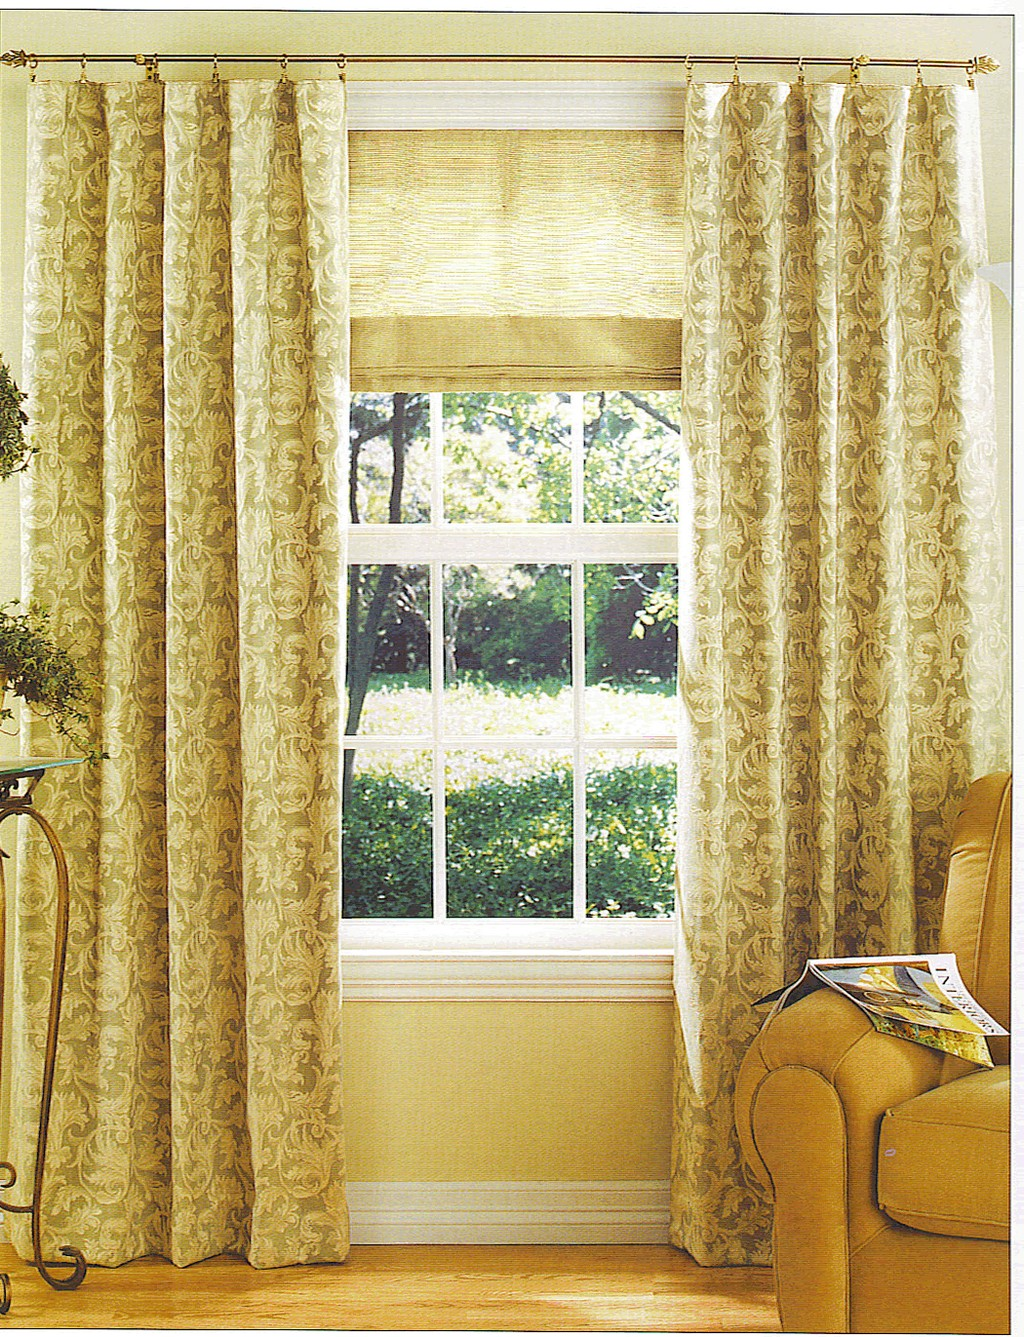 french country curtains, cow kitchen curtains, kitchen curtains solid taupe, curtain patterns